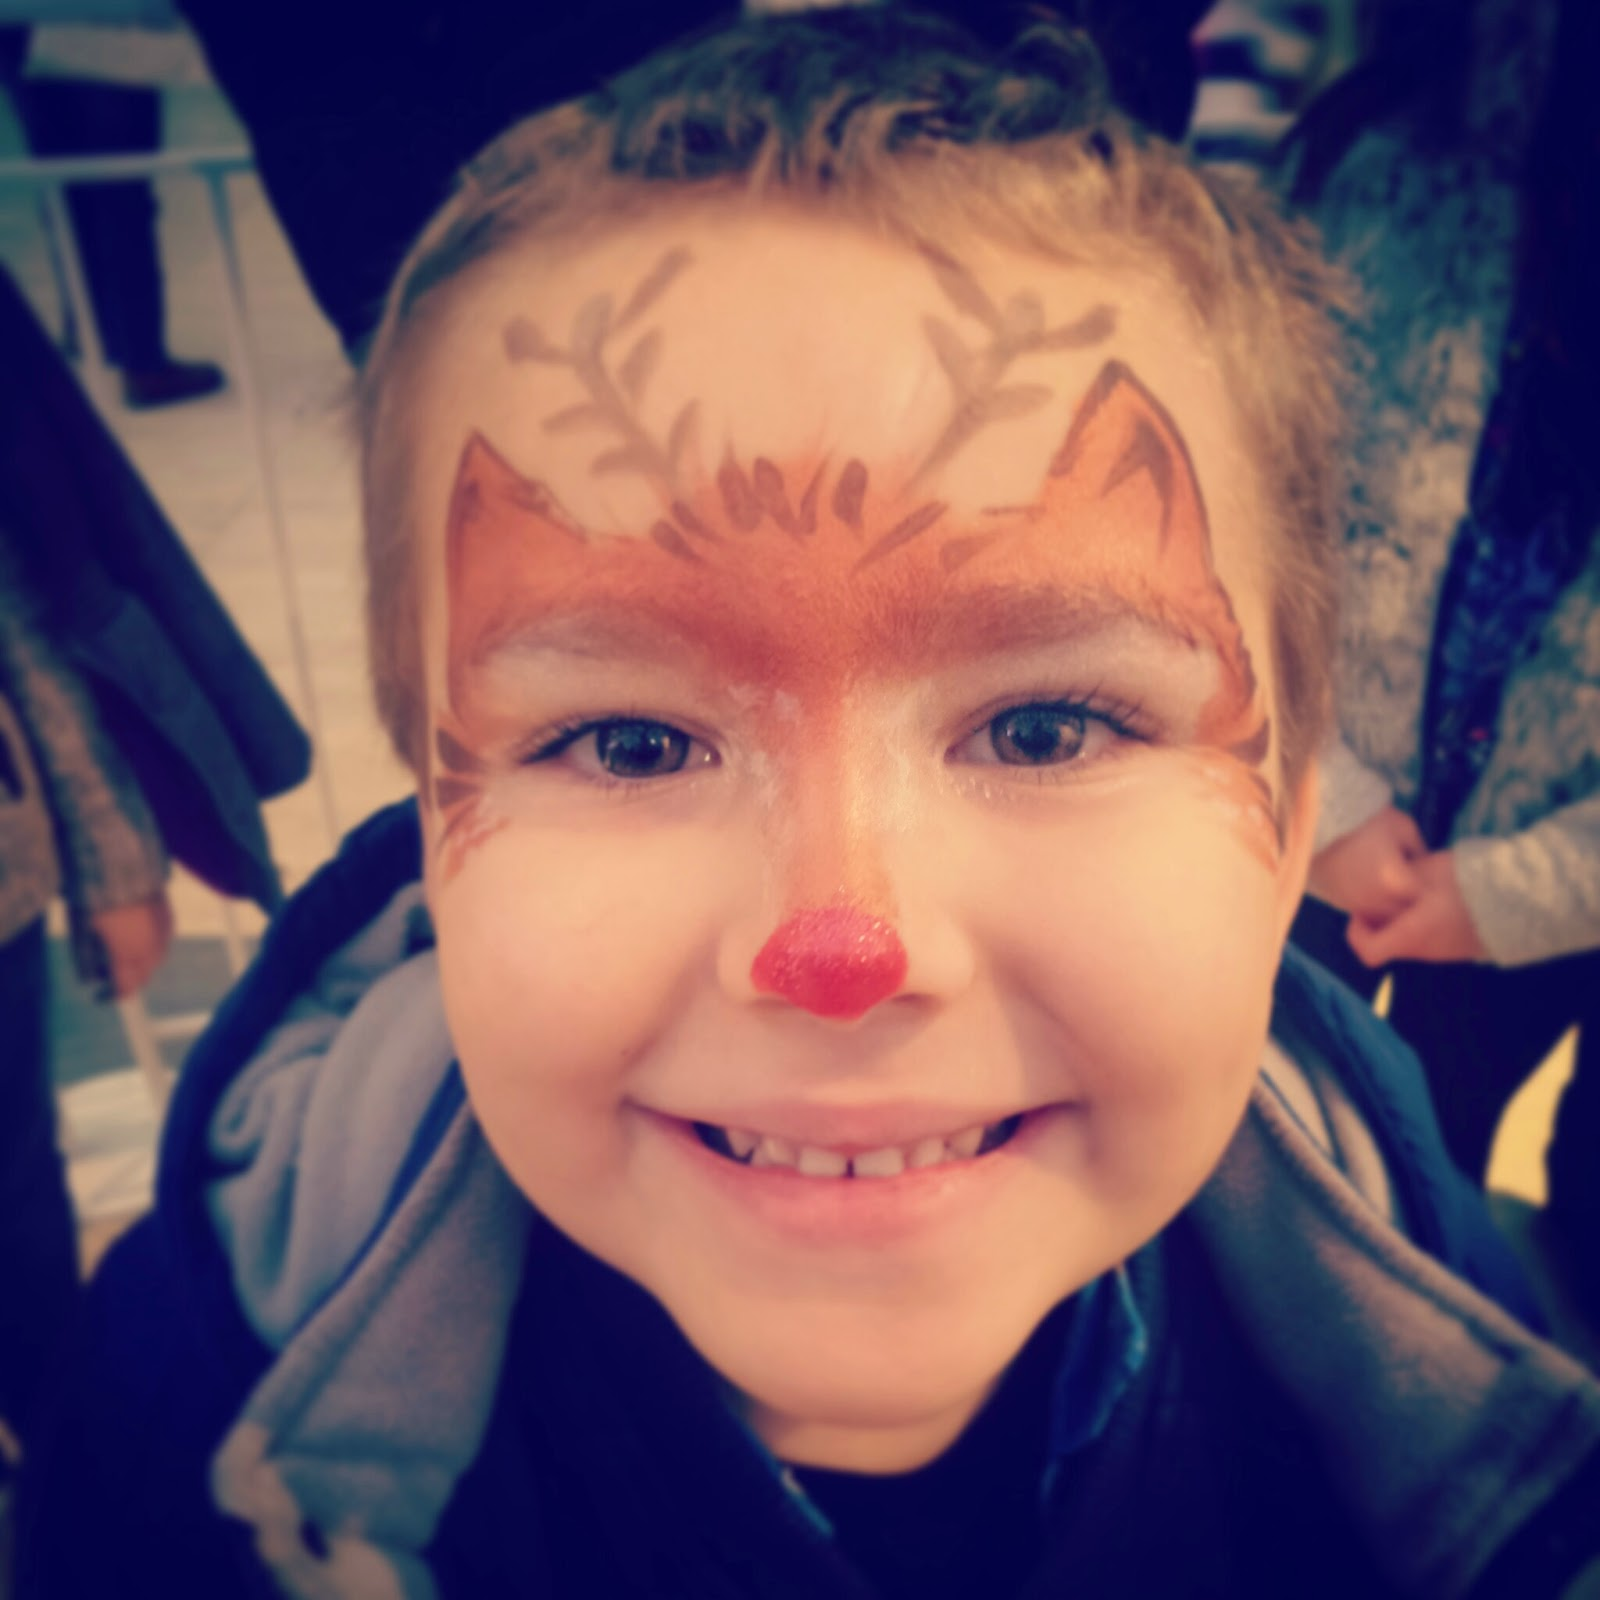 Big Boy with a reindeer face paint